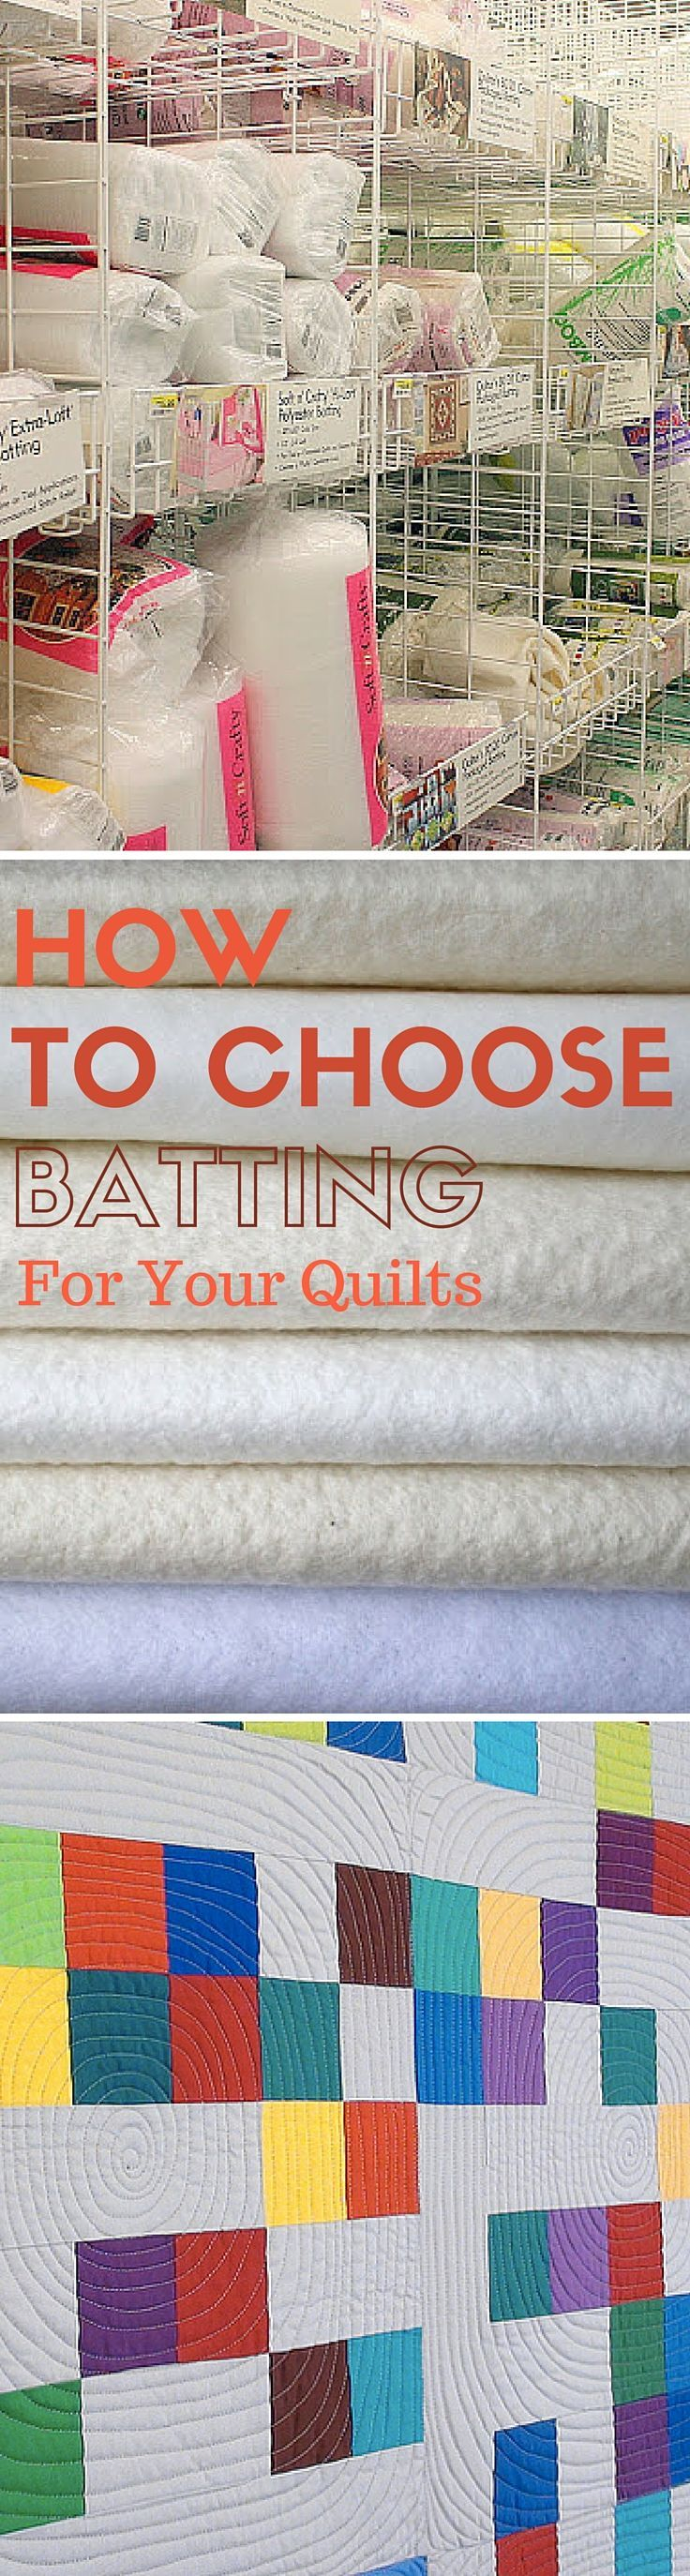 25+ Best Ideas About Quilts Online On Pinterest  Quilting, Patchwork  Patterns And Quilt Making